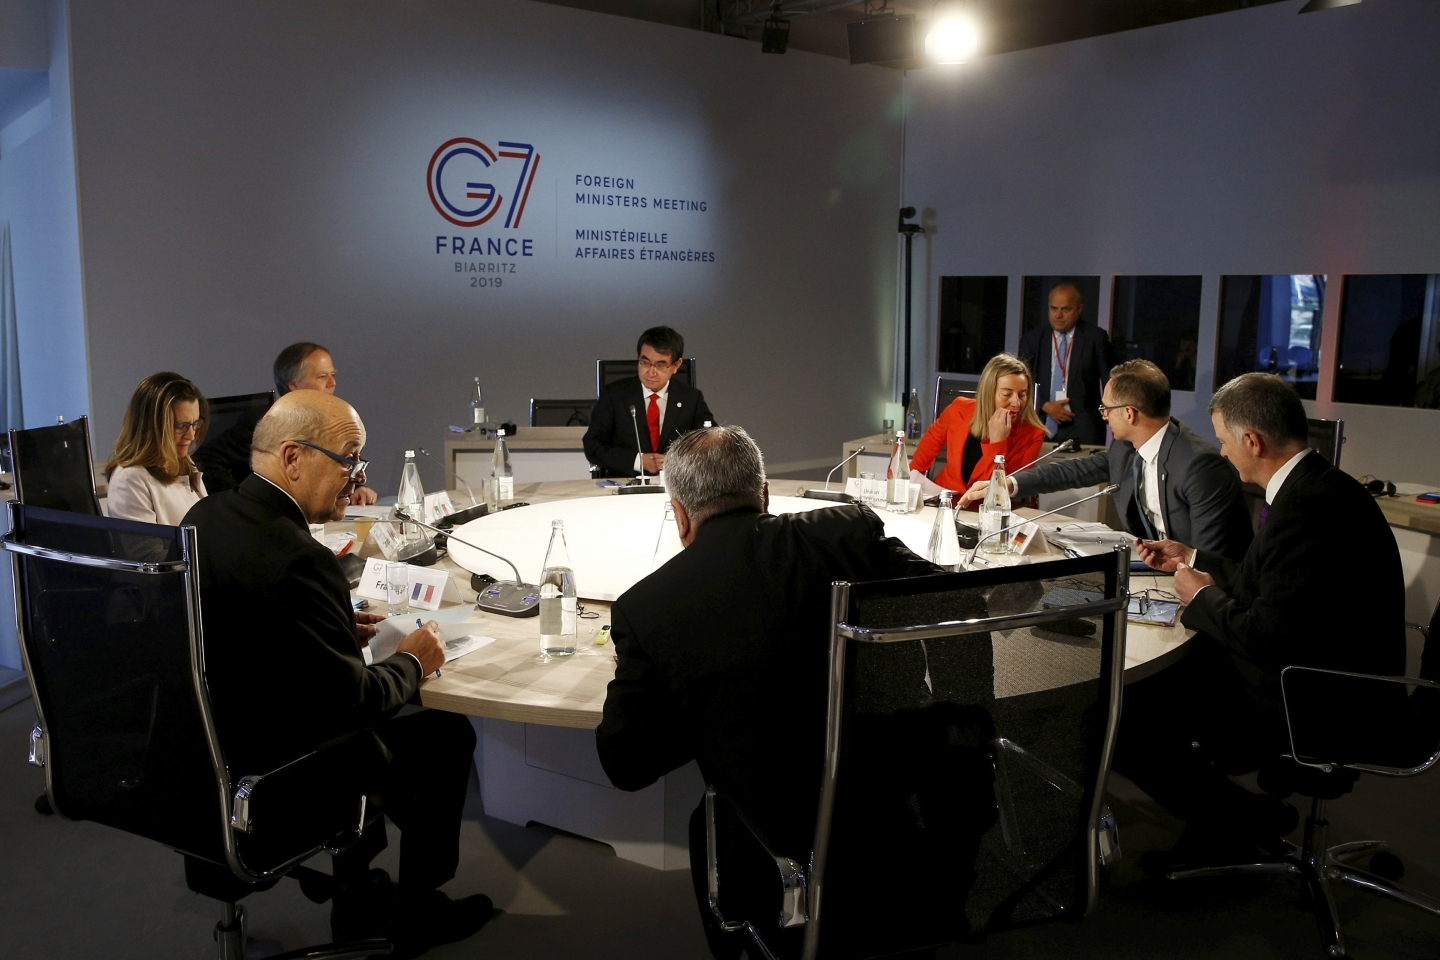 Group of Seven foreign ministers meet in Dinard, France on April 6, 2019. (Stephane Mahe/Pool photo via AP)